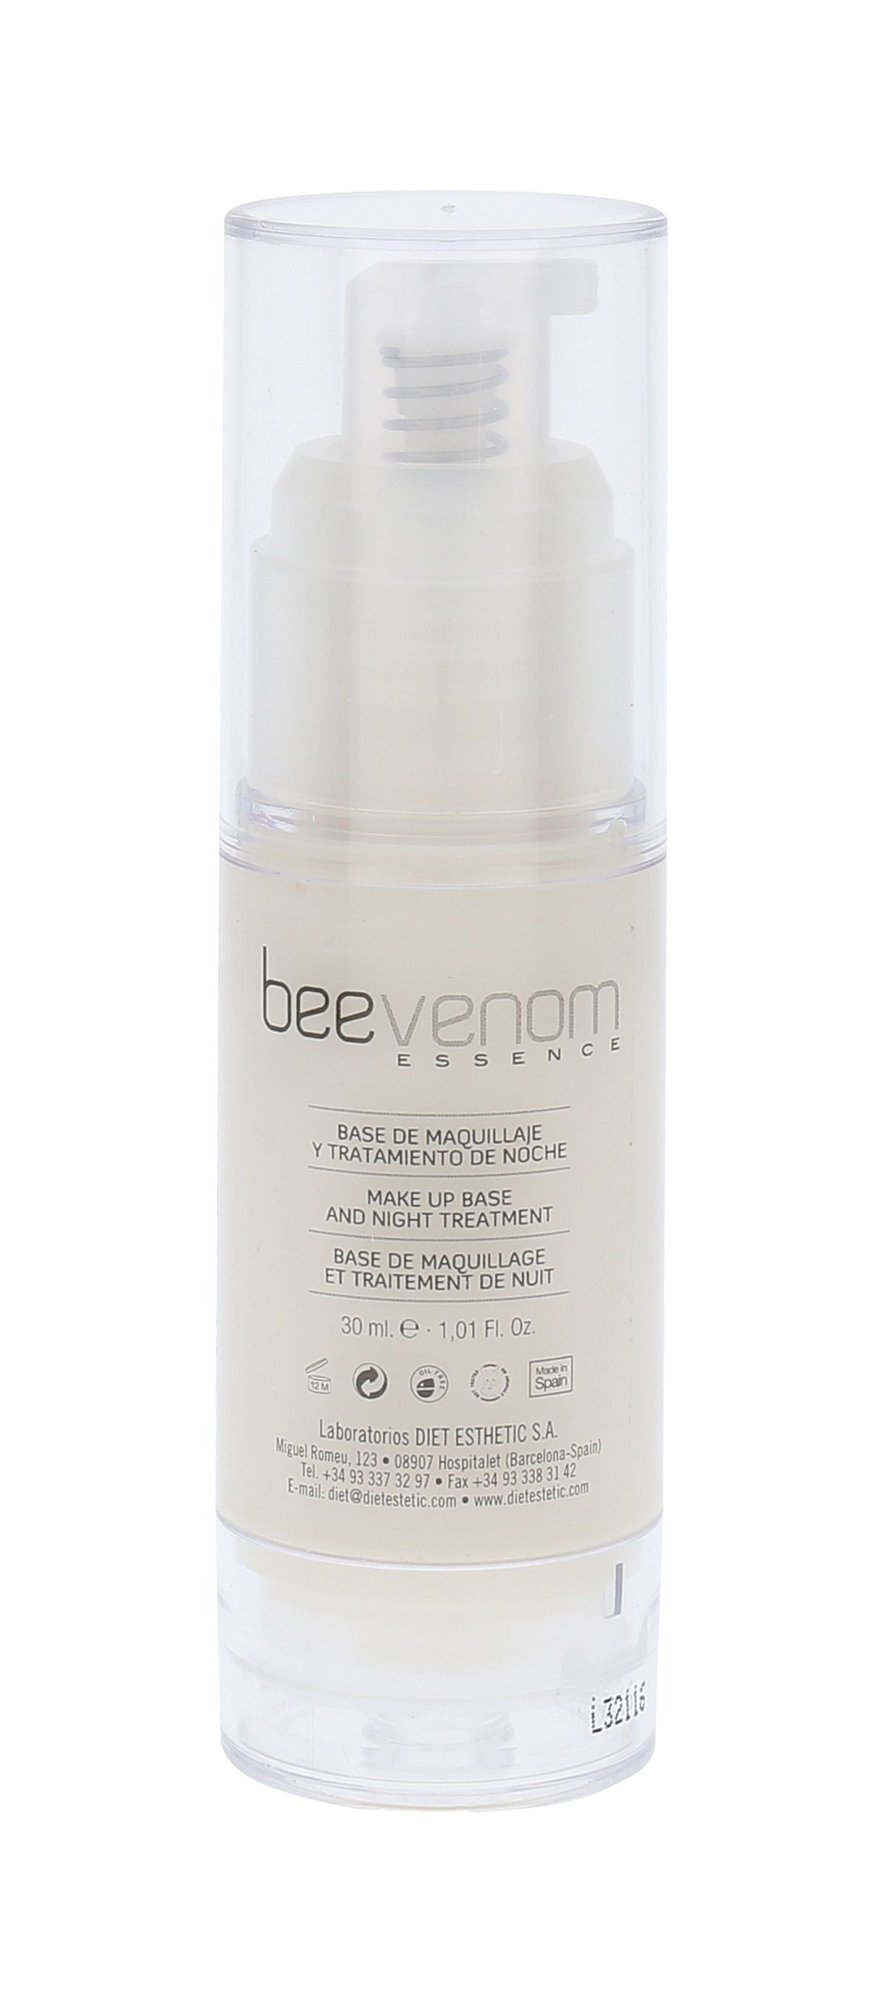 Diet Esthetic Bee Venom Essence  Pleťové sérum, W, 30 ml